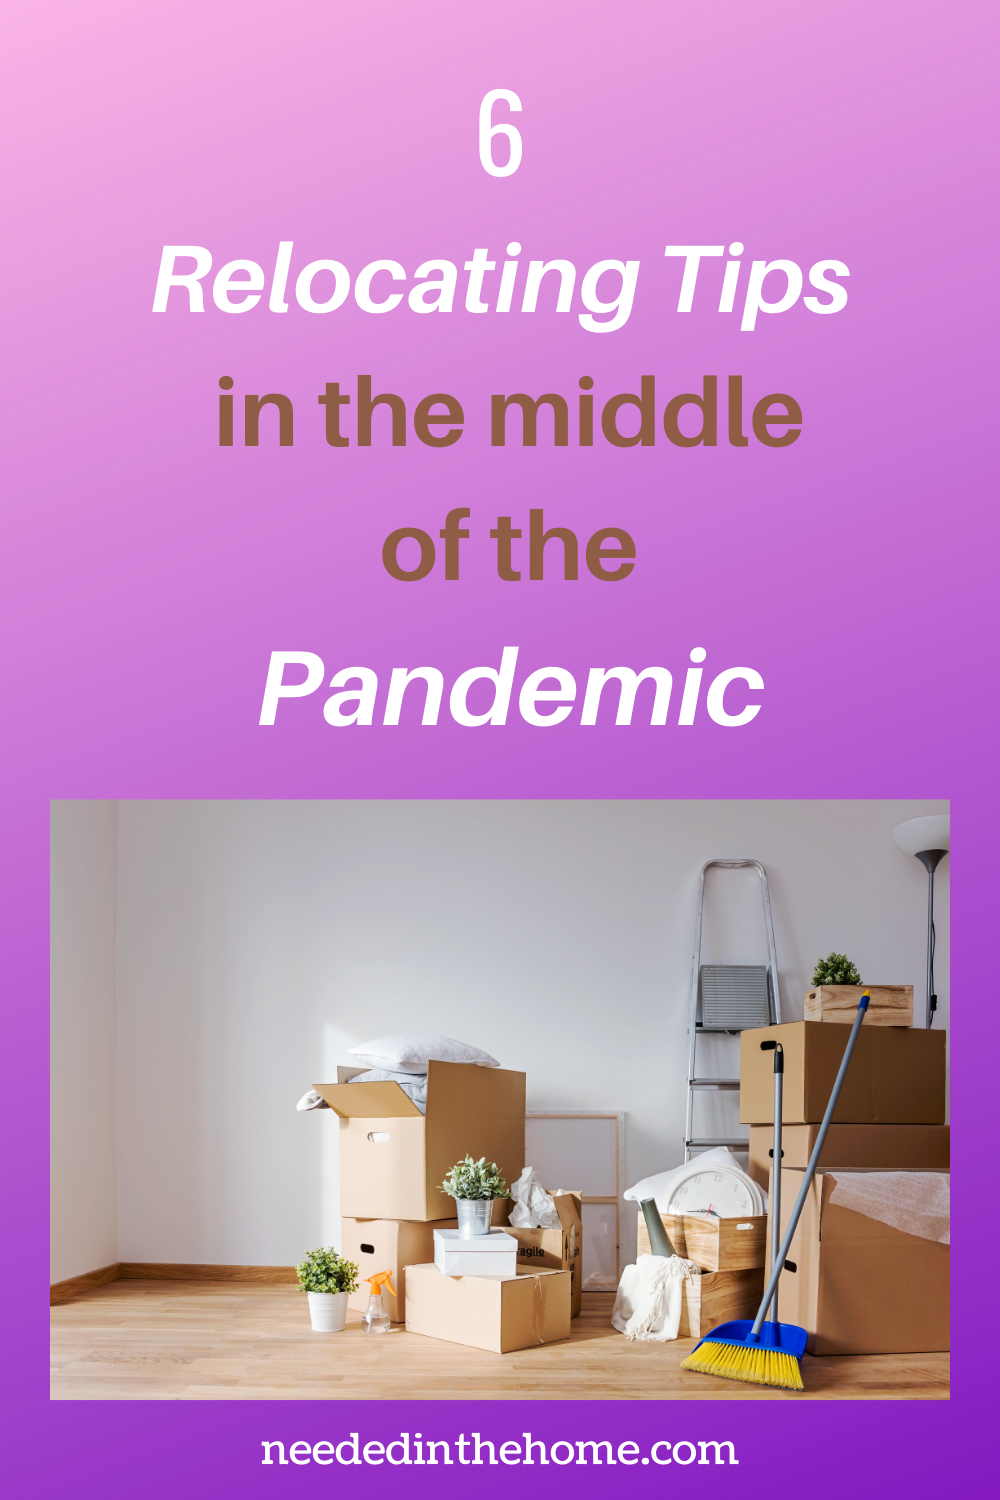 pinterest-pin-description 6 relocating tips in the middle of the pandemic moving boxes cleaning supplies neededinthehome